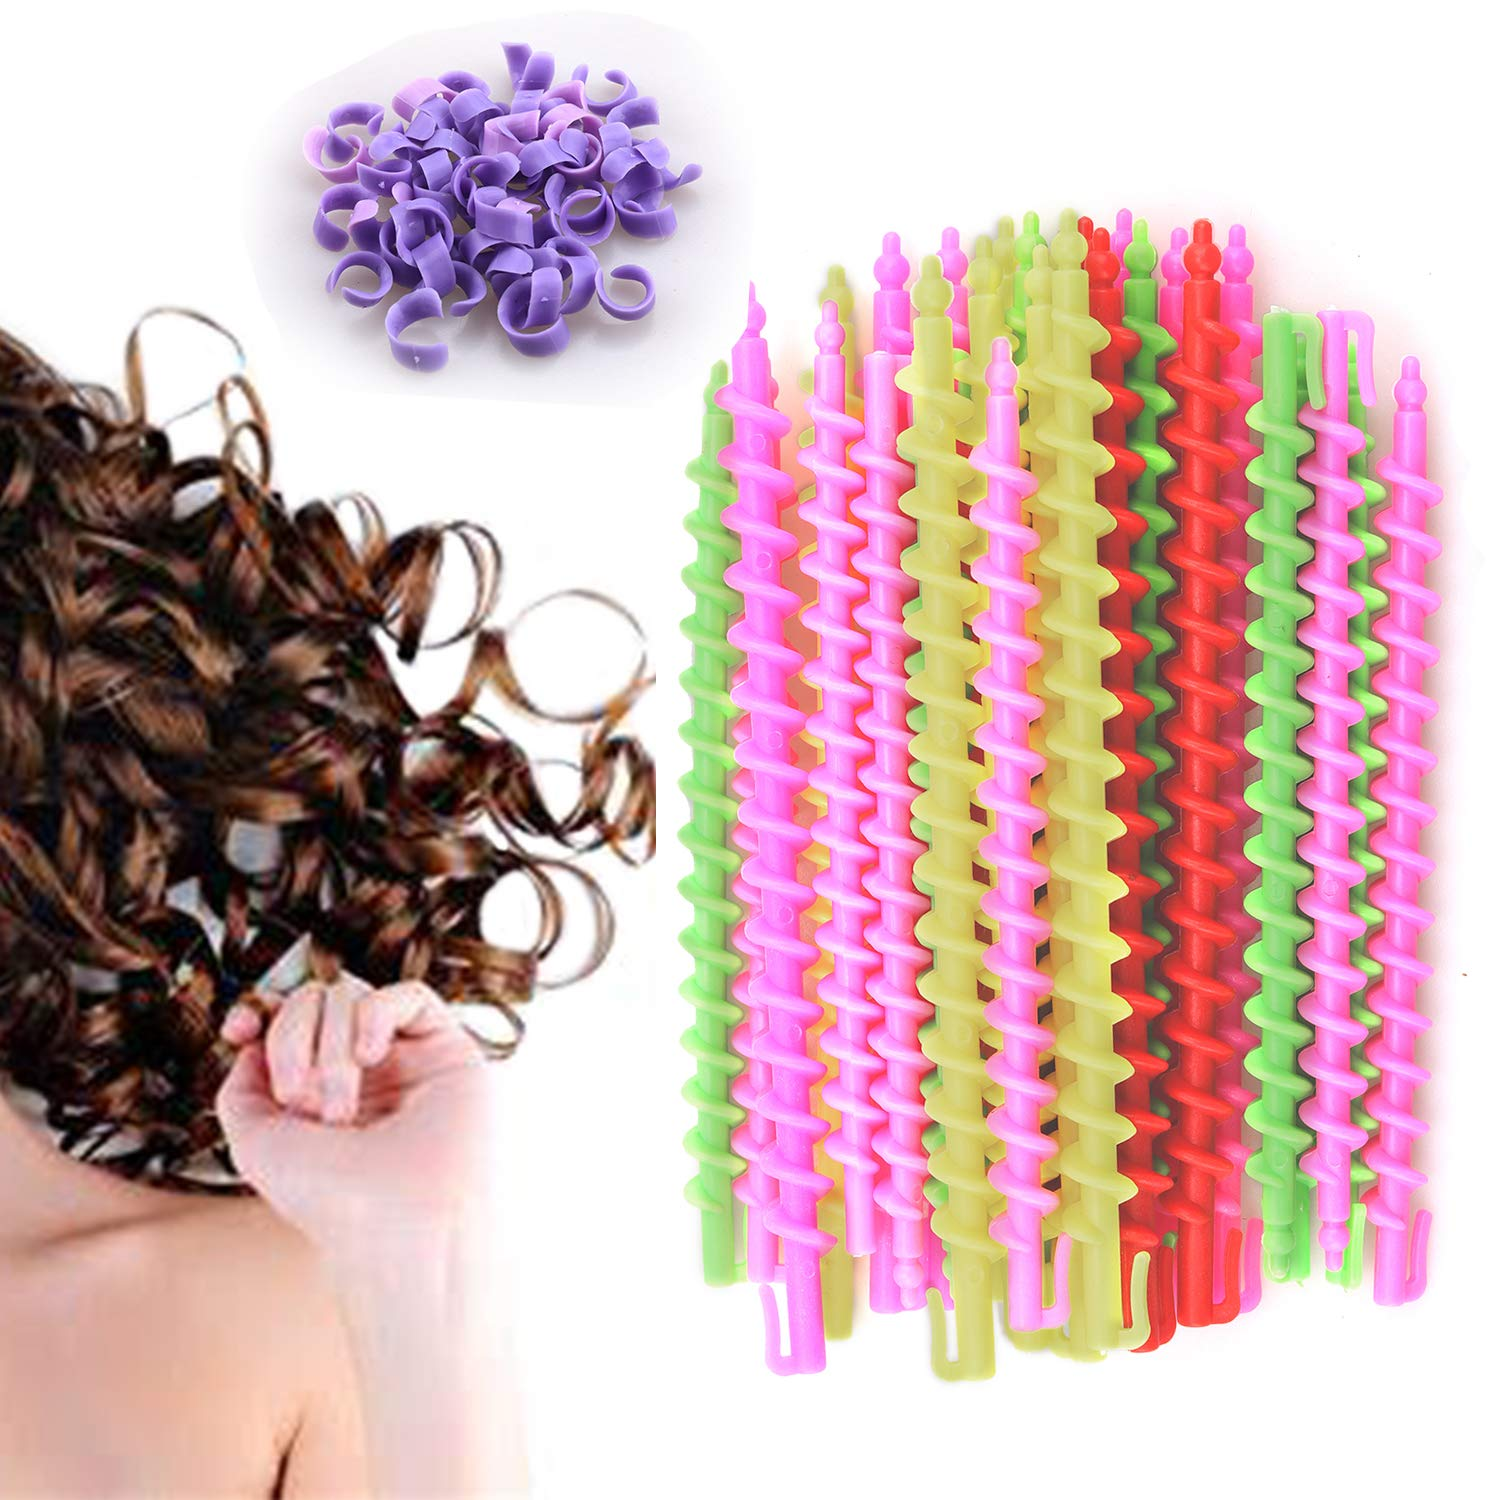 50 Pack Plastic Spiral Hair Perm Rod,Hairdressing Spiral Hair Perm Rod,Hair Styling Spiral Perm Rod,Spiral Curling Perm Rod for Women Girls